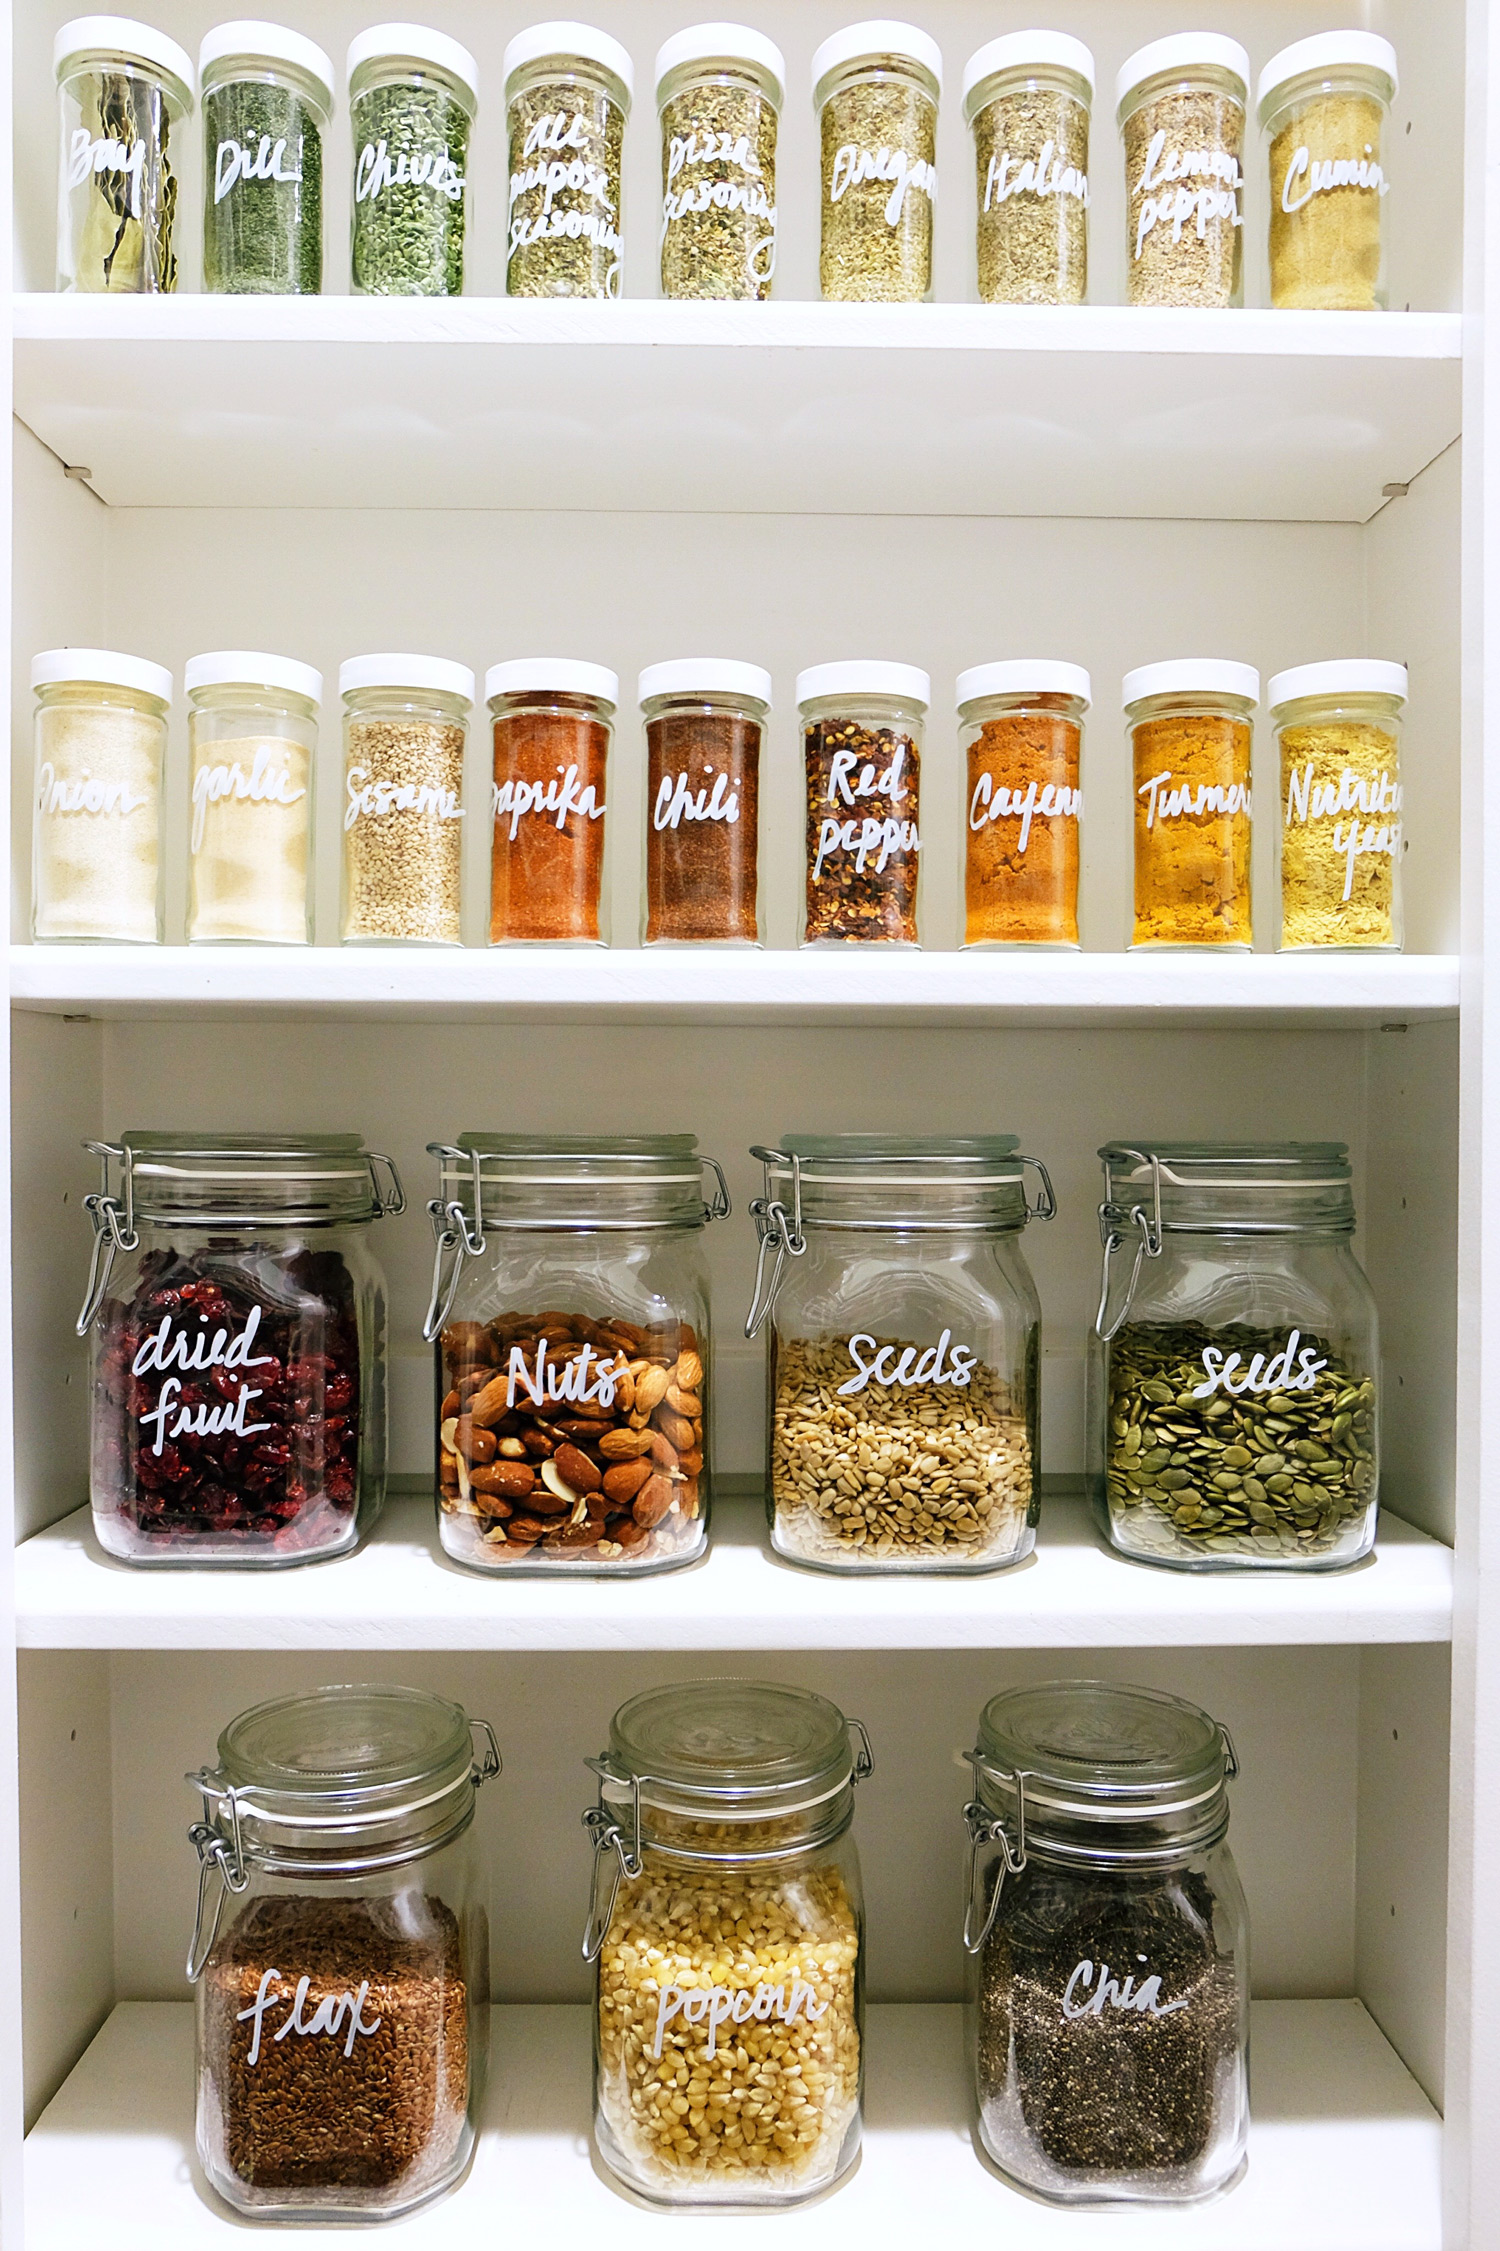 5 Easy Steps To Keep Your Pantry Clean